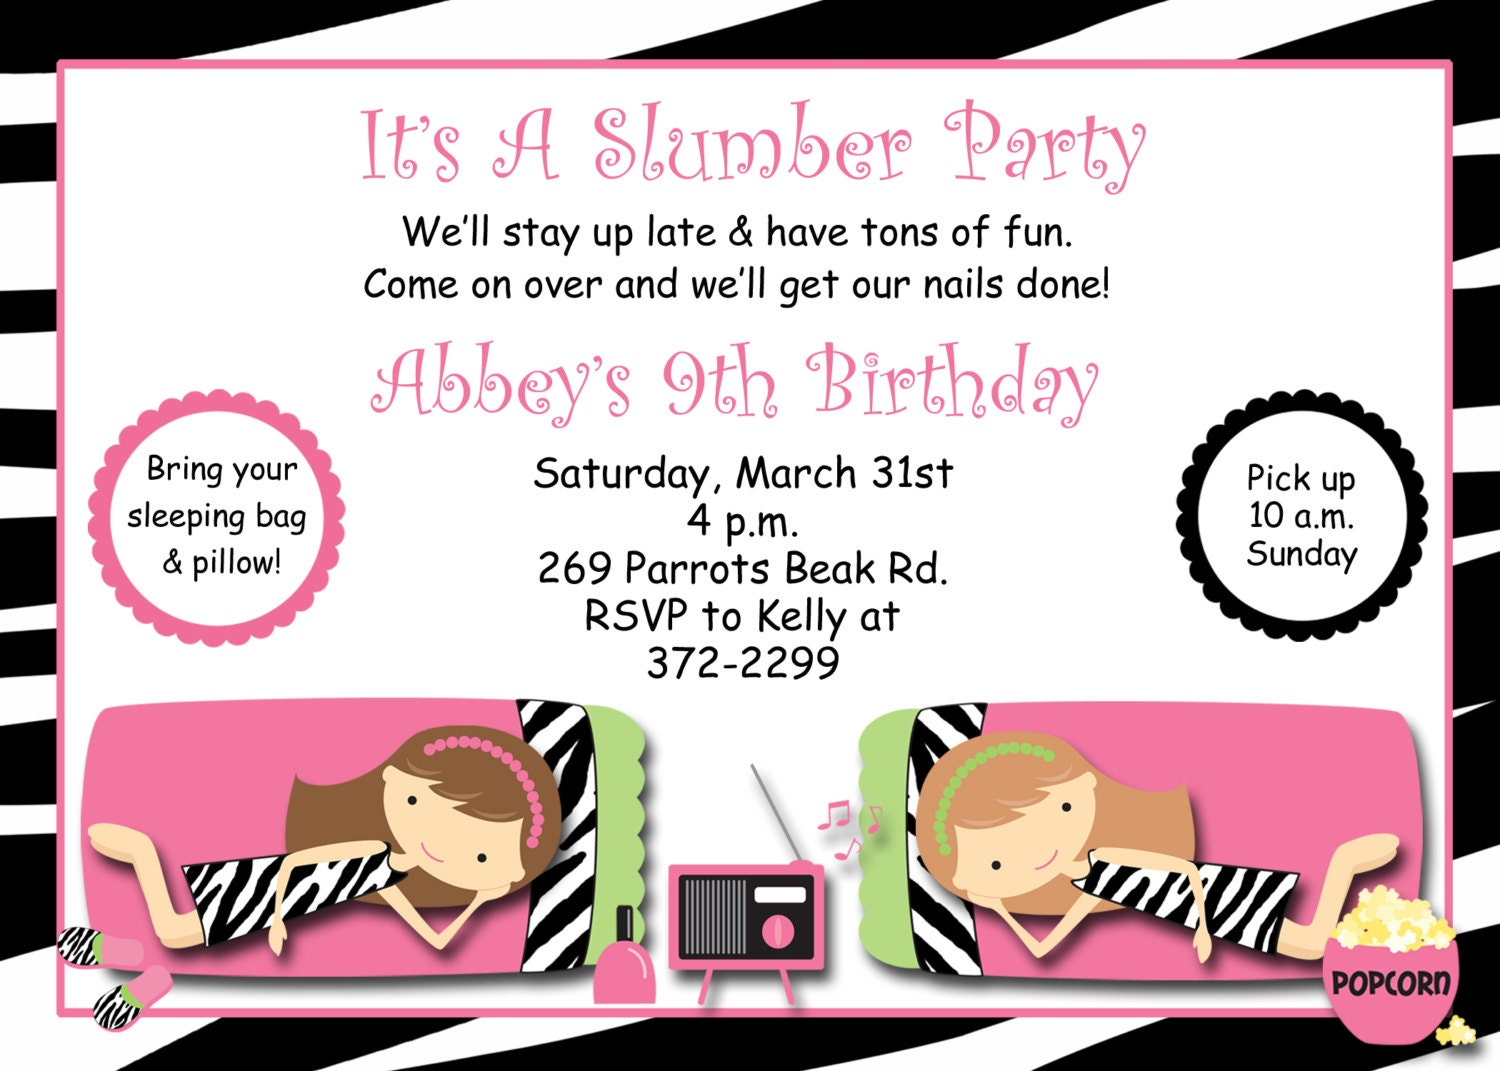 Pyjama Party Invites was good invitations ideas